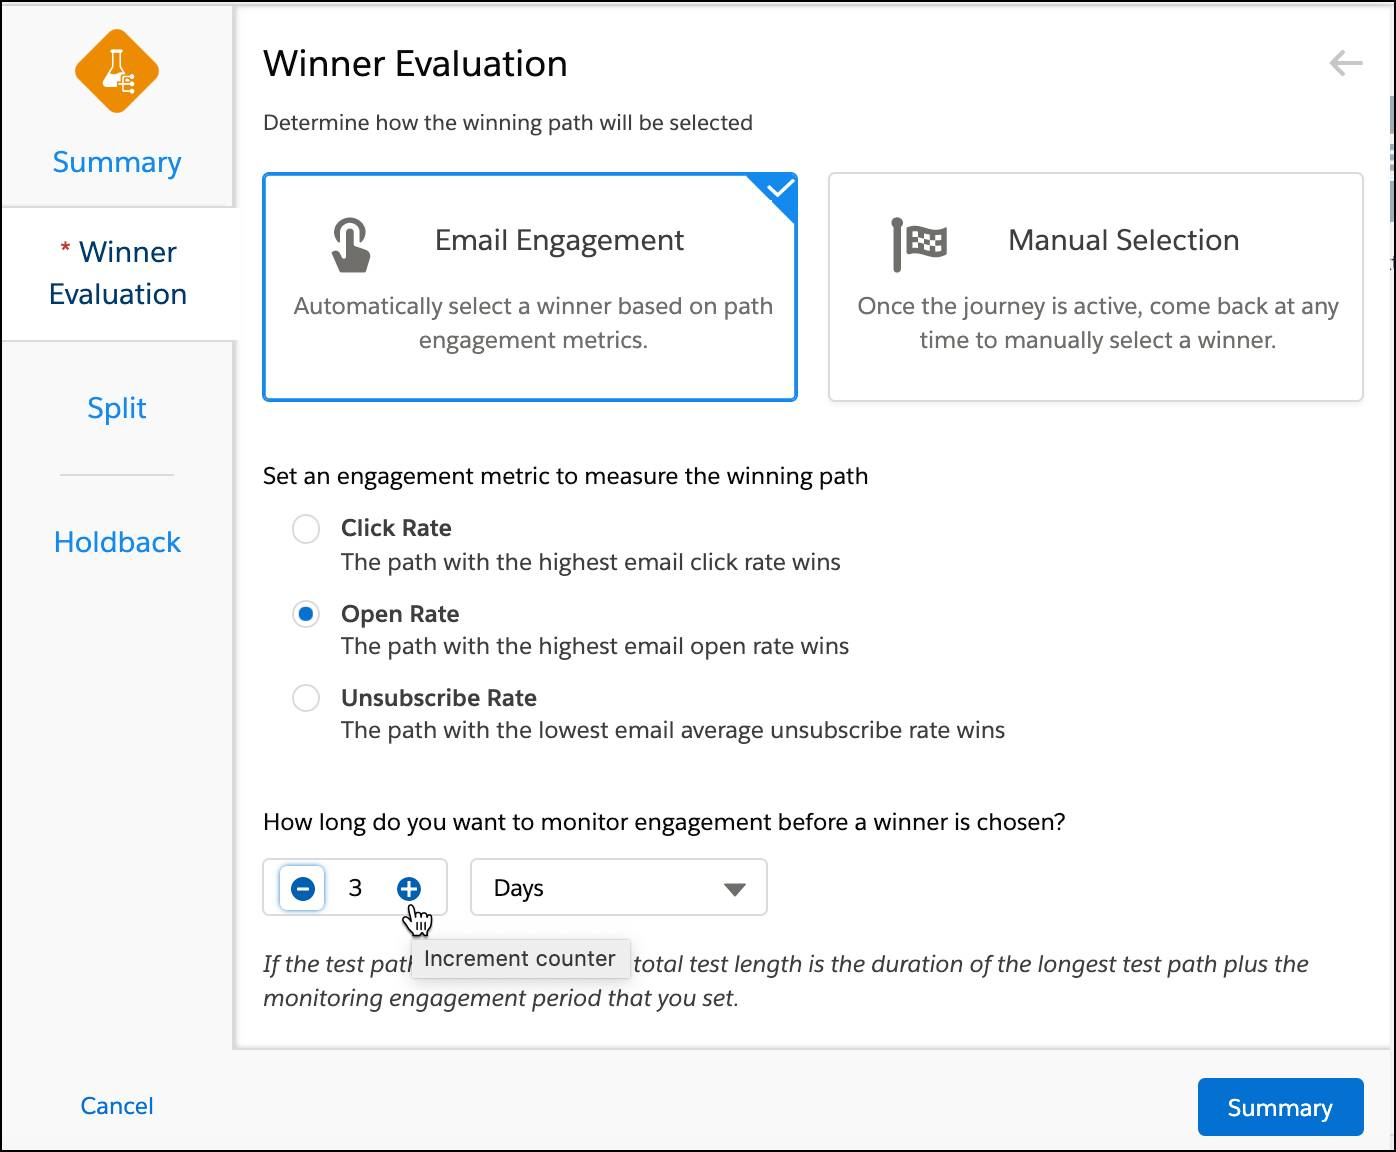 Winner Evaluation screen with email engagement selected using open rate and a test duration of 3 days.